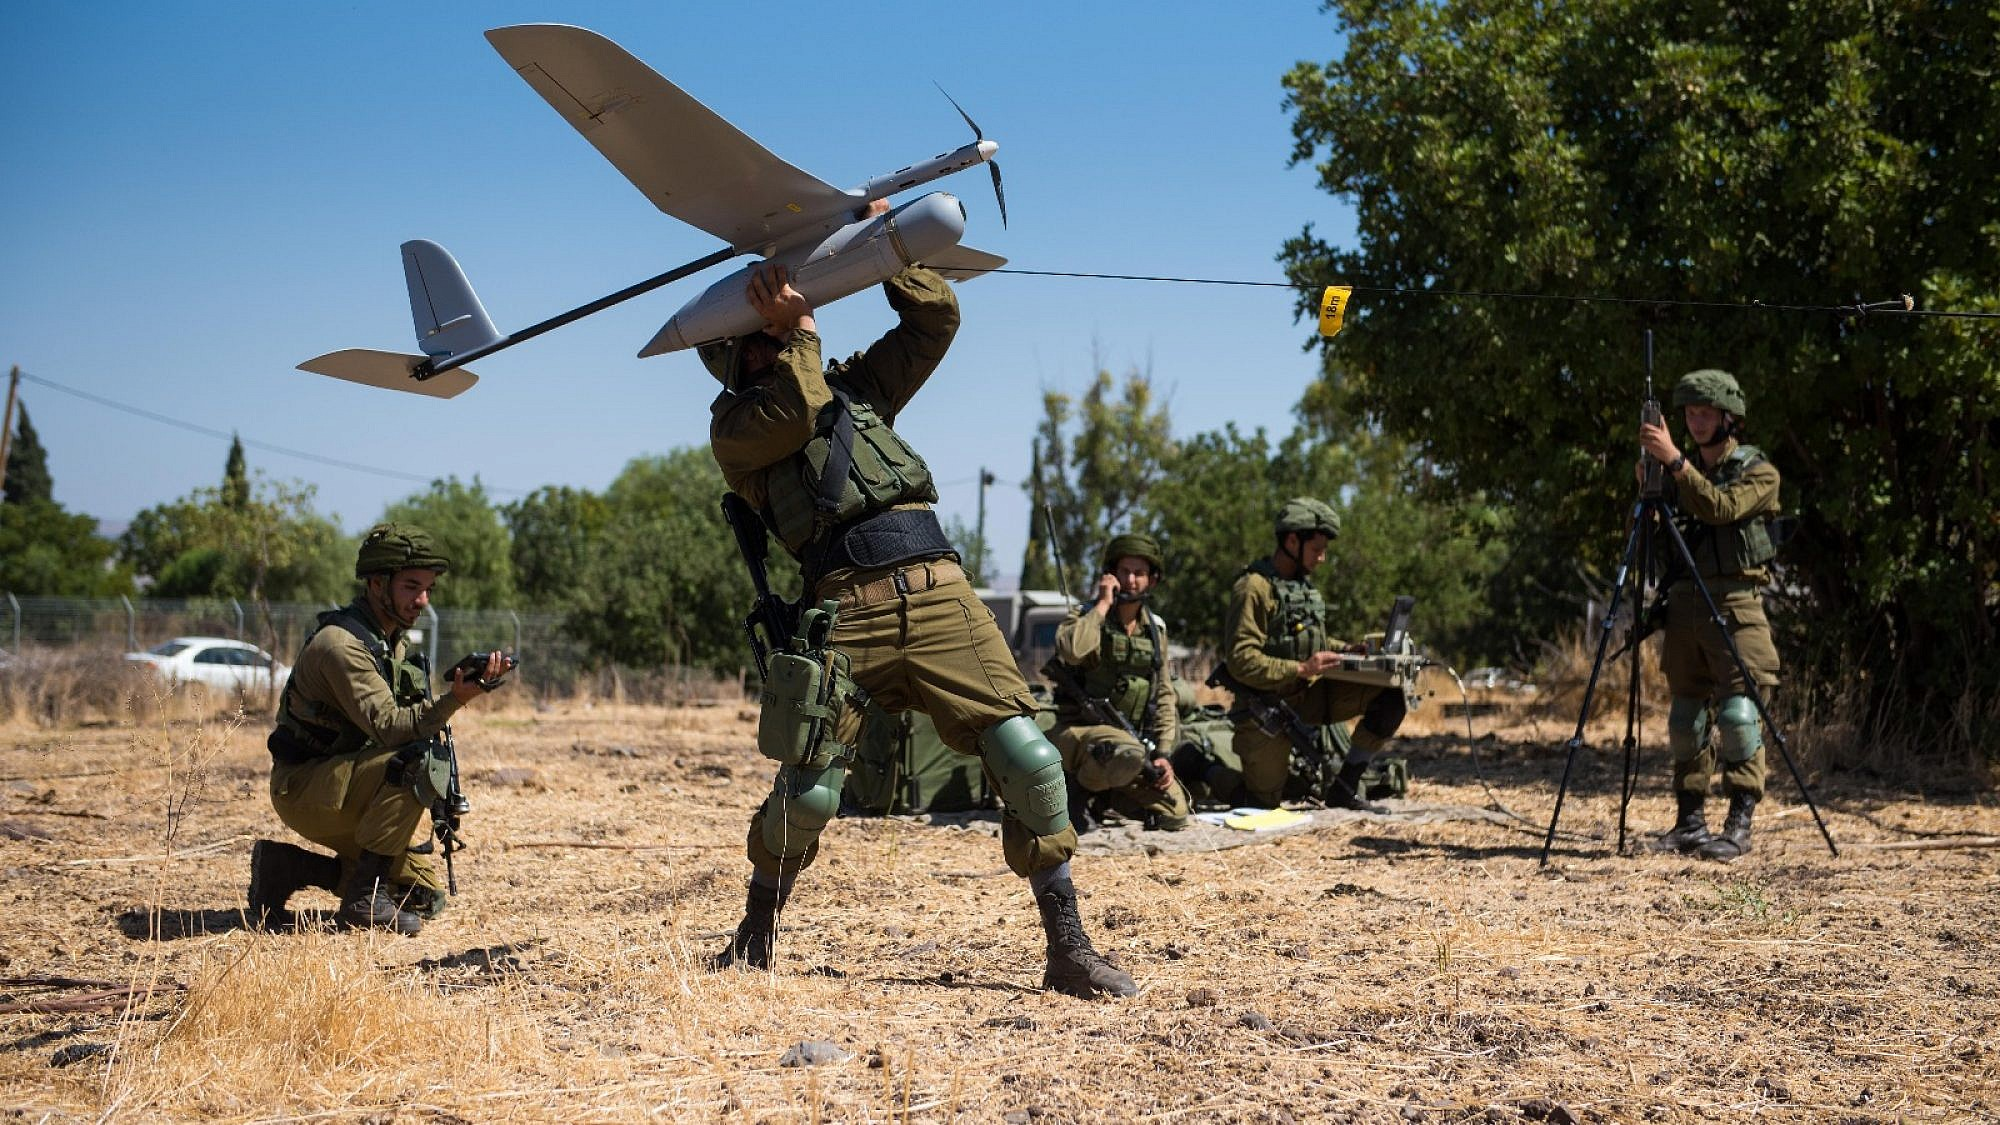 The IDF's Skylark Unit prepares one of its drones for flight. Credit: IDF.